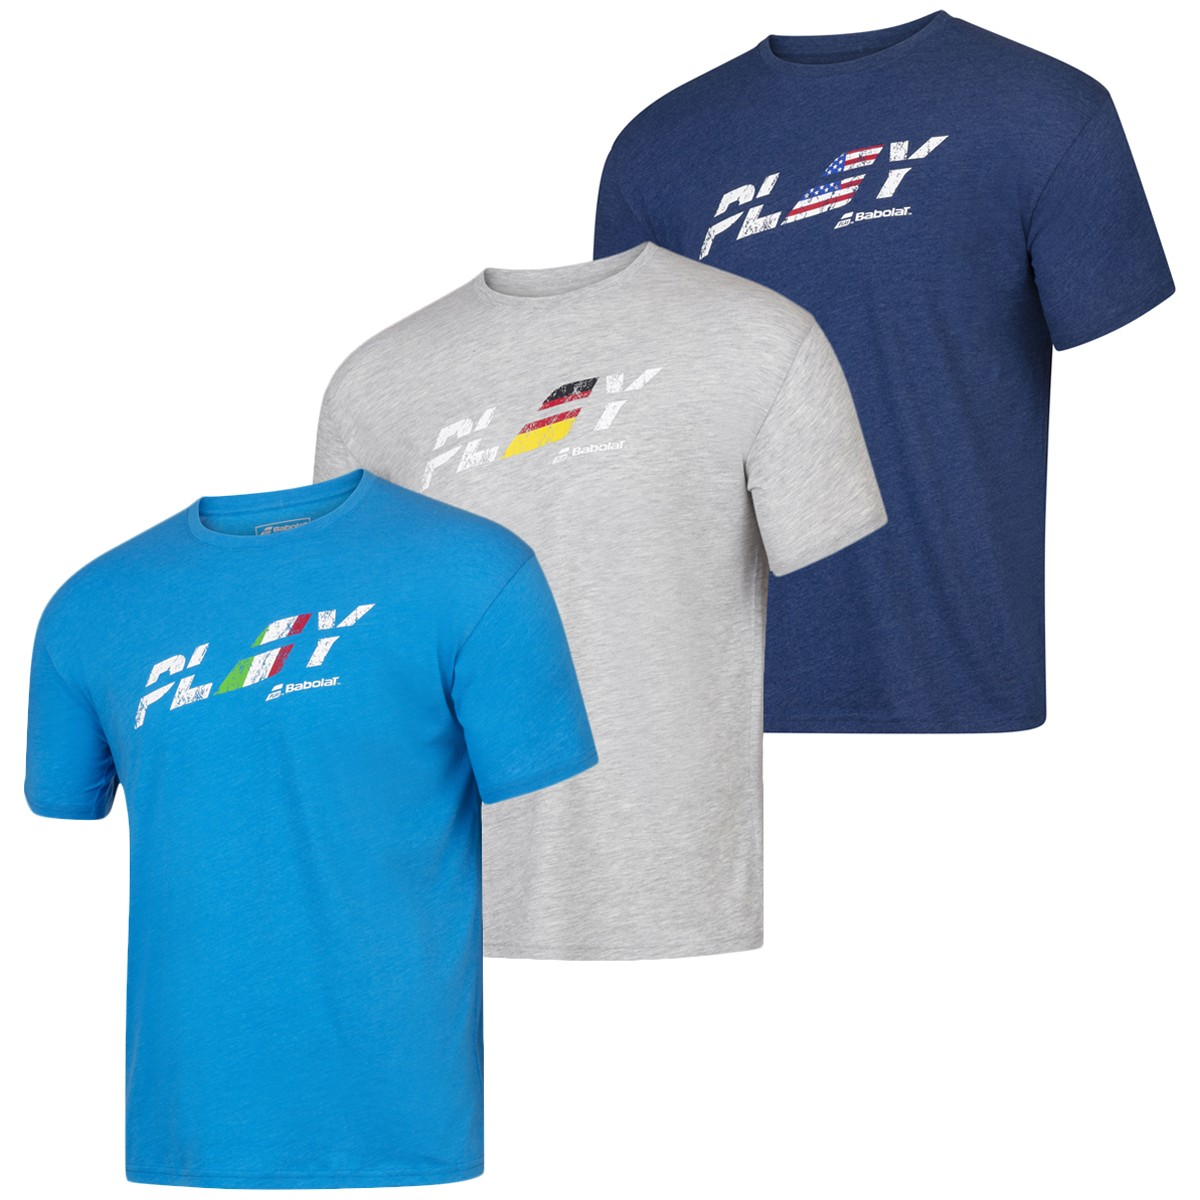 T-SHIRT BABOLAT EXERCISE COUNTRY